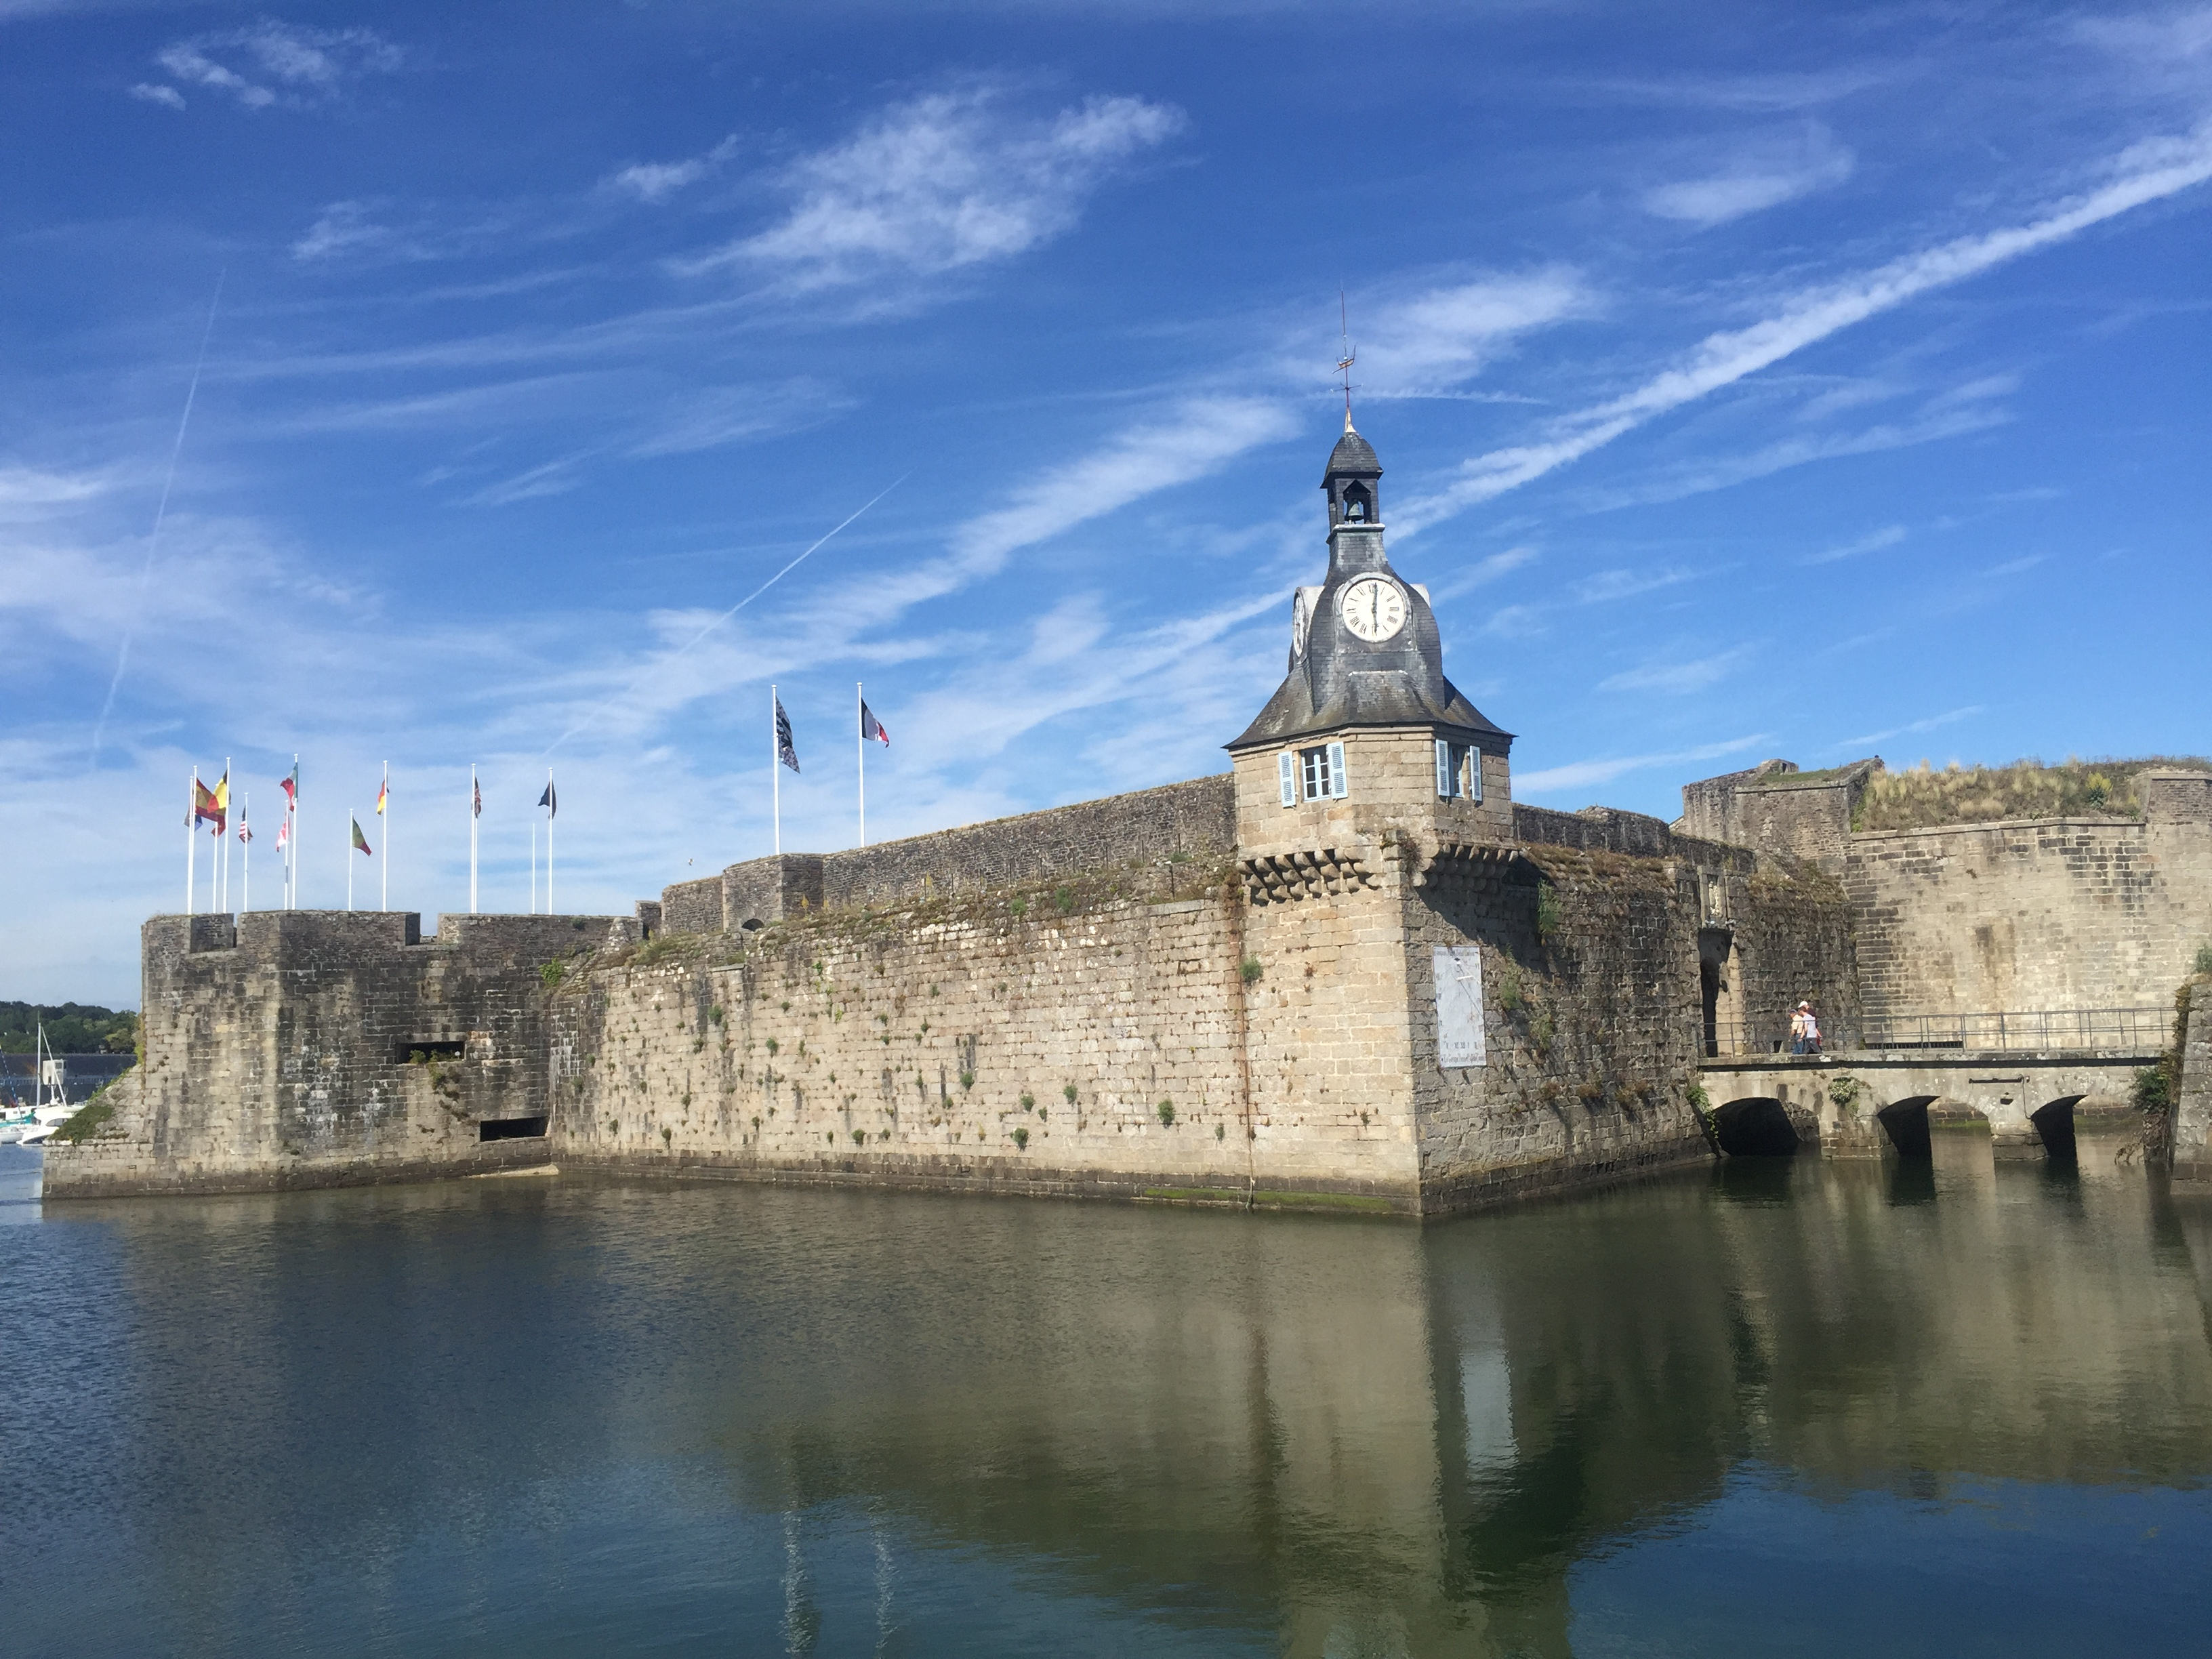 Walled city of Concarneau